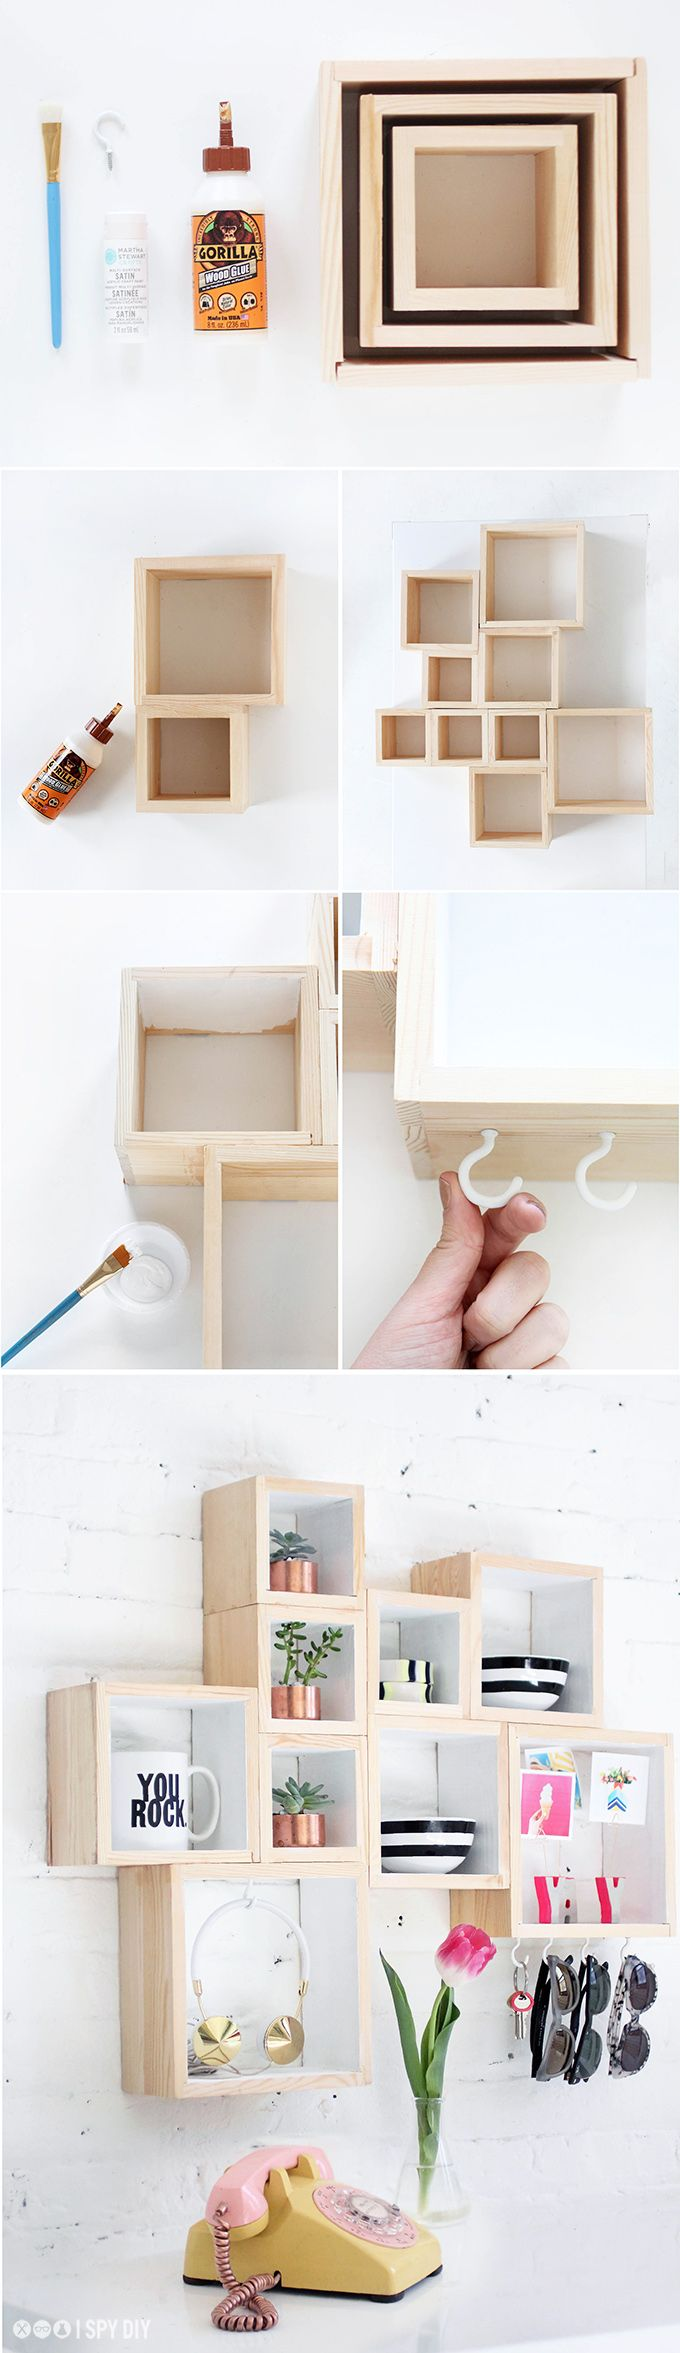 DIY Wall Box Storage Tutorial //Manbo